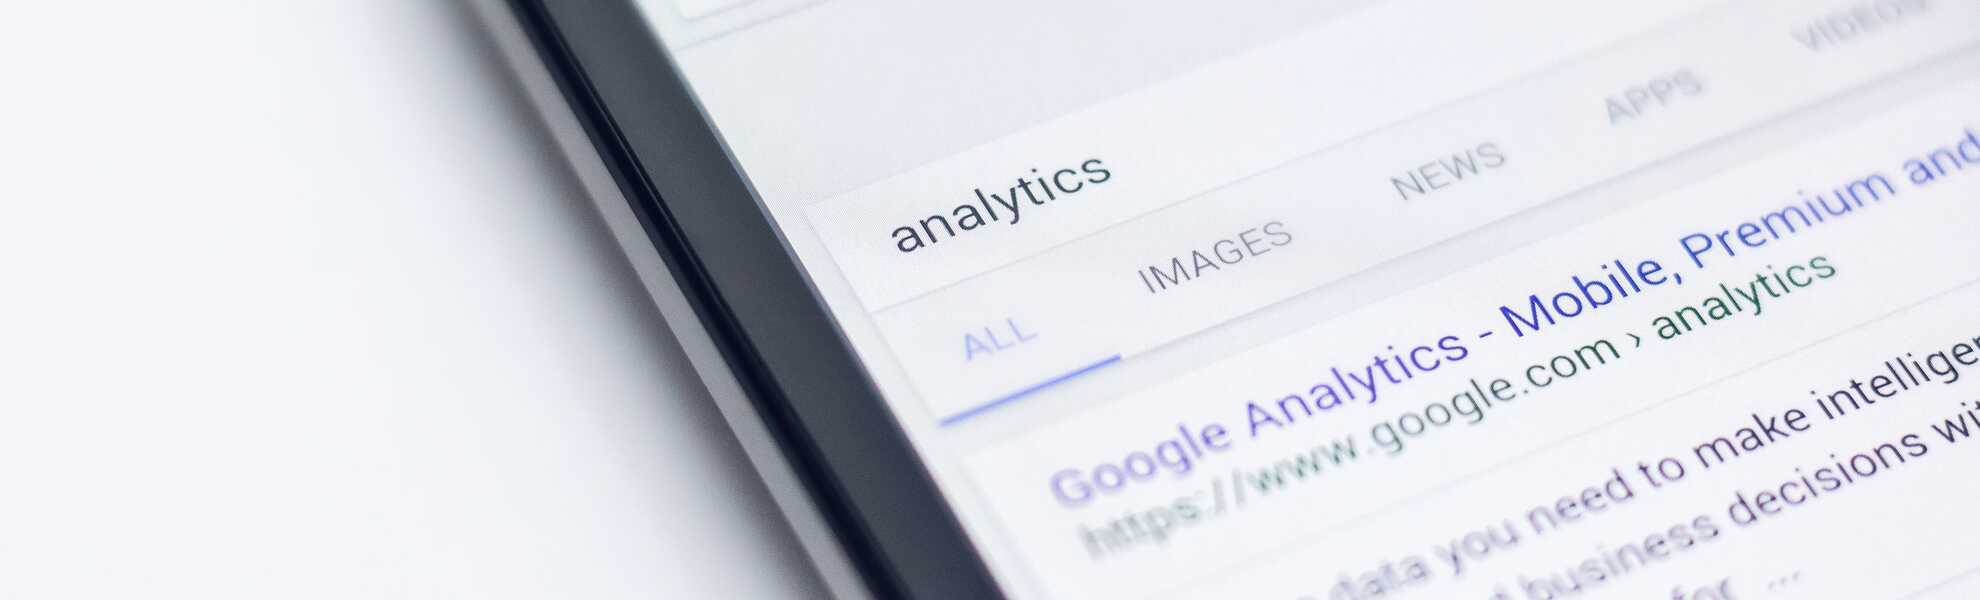 Google analytics on a smartphone